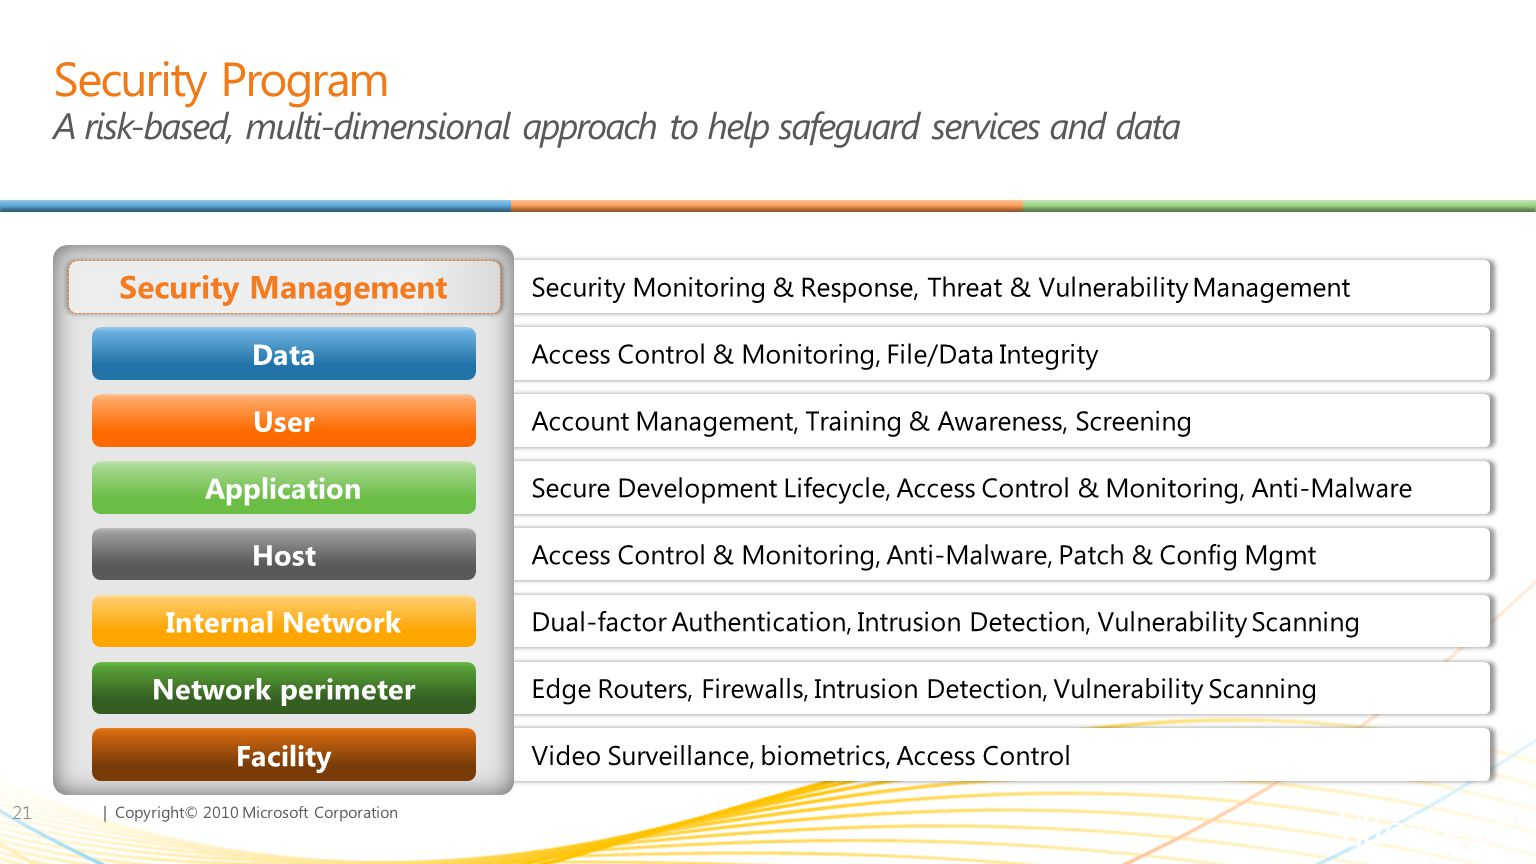 | Copyright© 2010 Microsoft Corporation Security Program A risk-based, multi-dimensional approach to help safeguard services and data 21